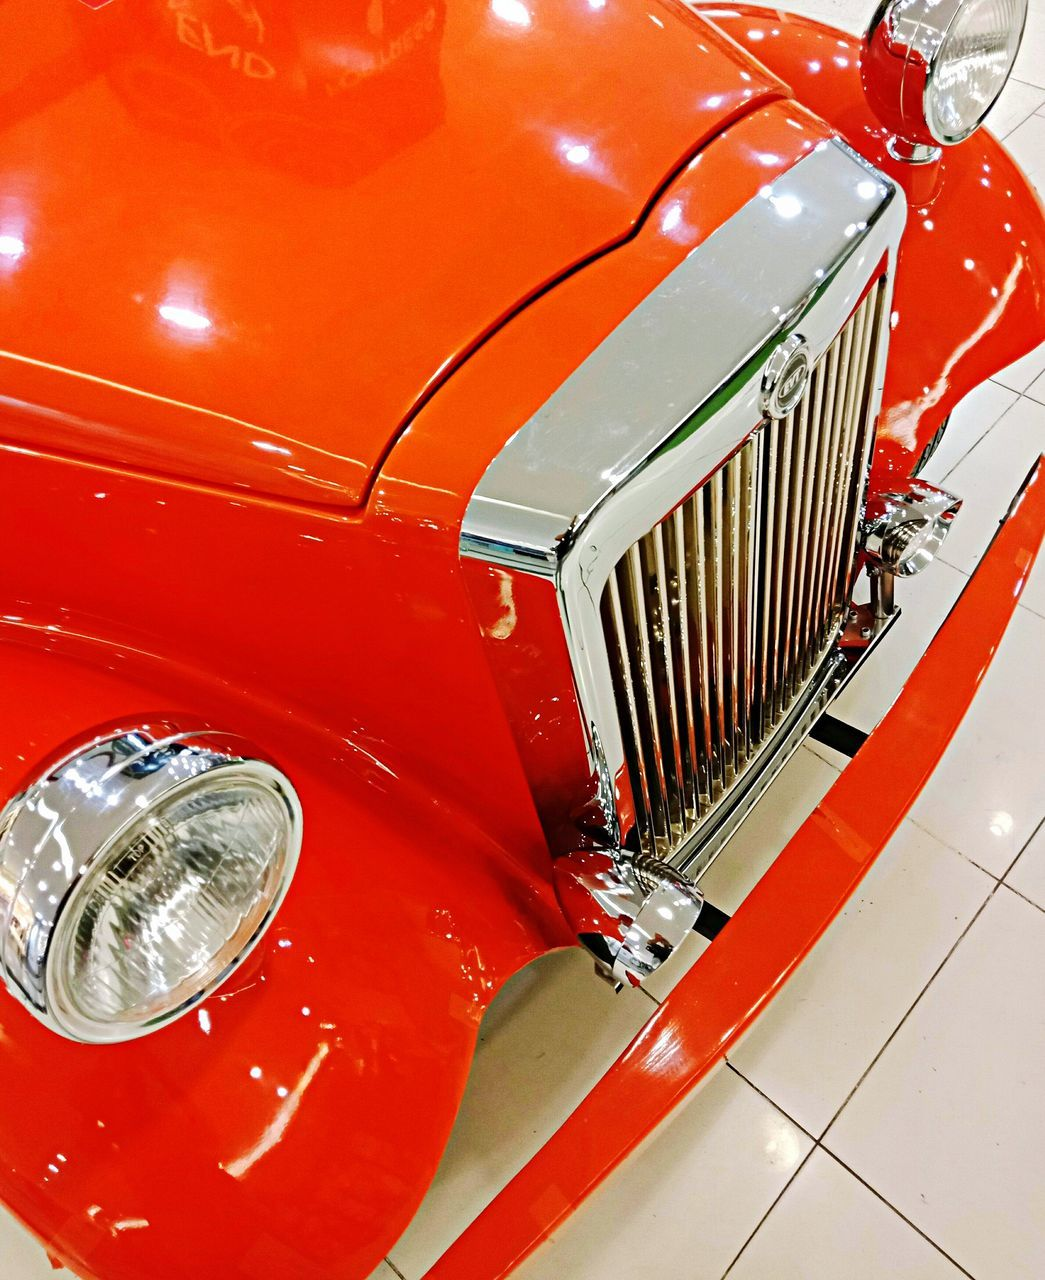 red, headlight, land vehicle, car, motor vehicle, vintage car, transportation, mode of transportation, metal, no people, retro styled, close-up, lighting equipment, shiny, machinery, indoors, high angle view, modern, wealth, chrome, electric lamp, luxury